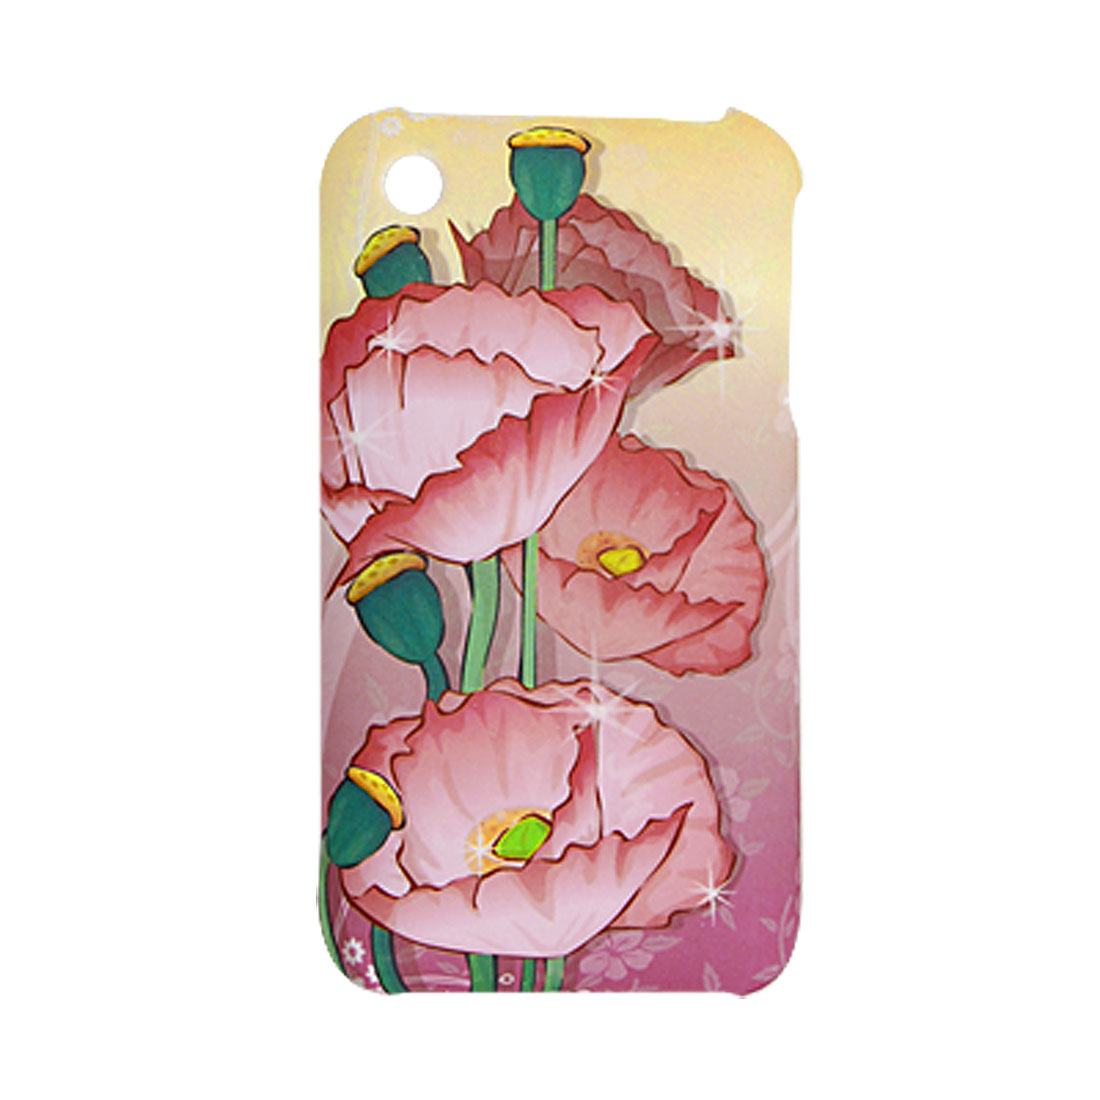 Lotus Leaves Pattern Rubberized Hard Plastic Case for Apple iPhone 3G